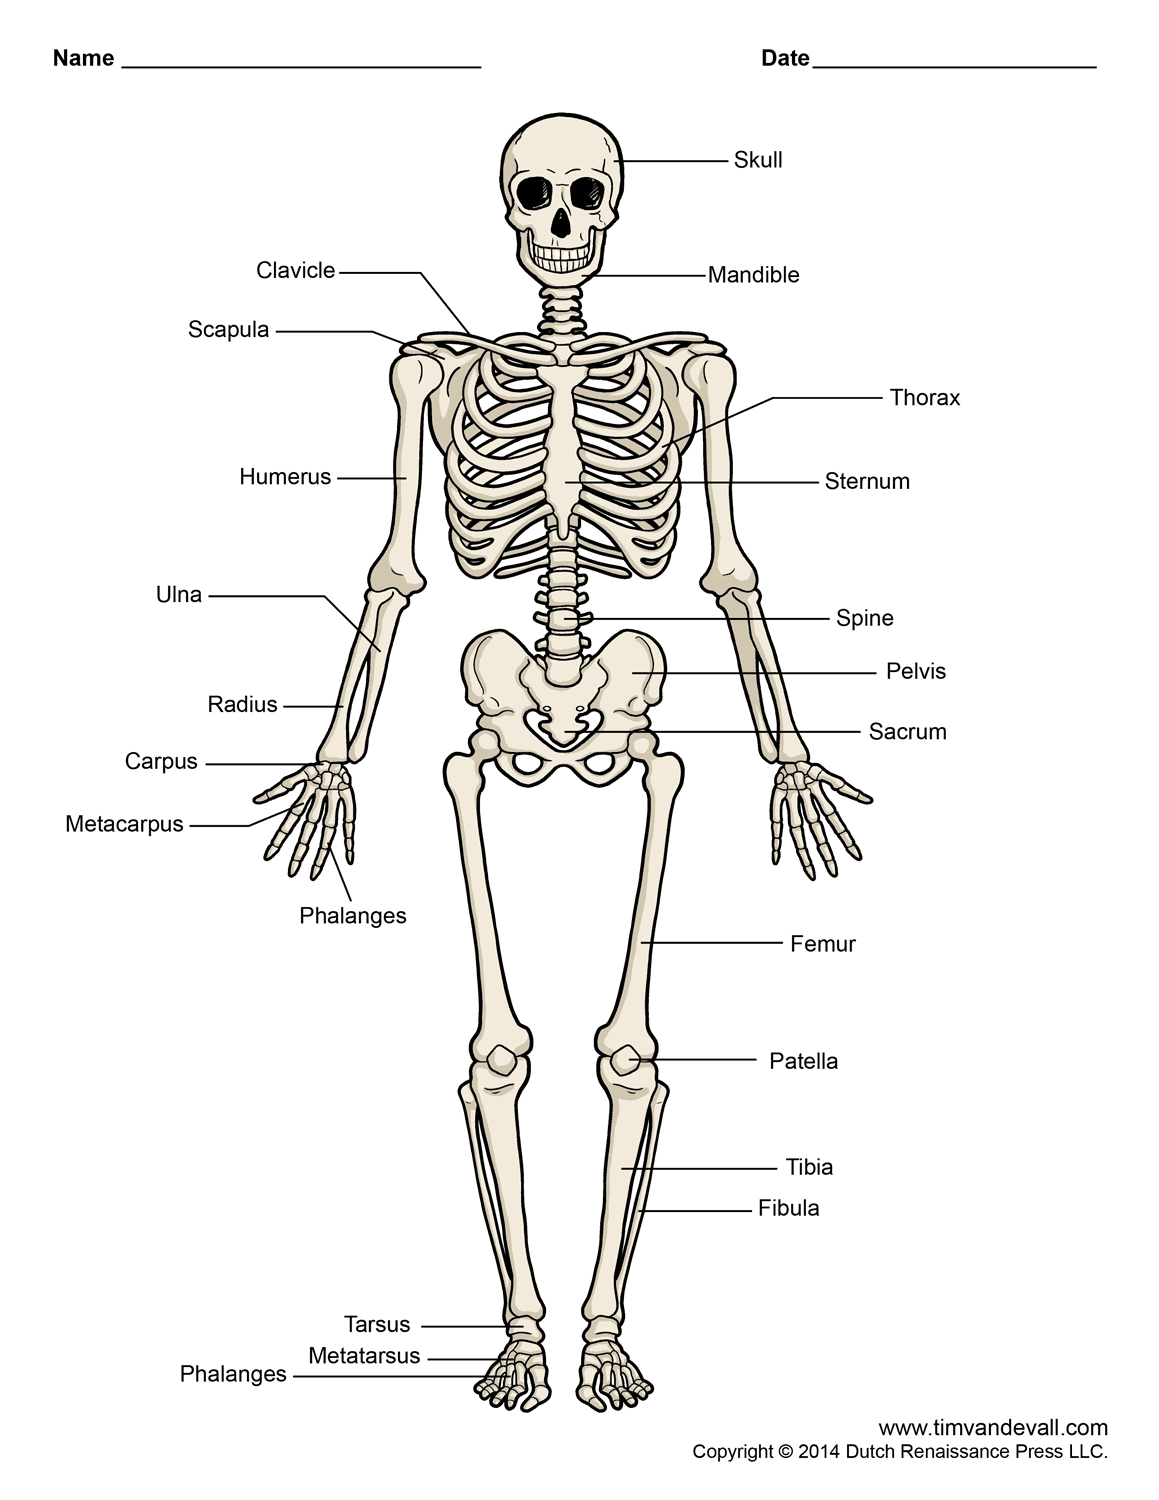 Touch This Image To Discover Its Story Image Tagging Powered By Thinglink Human Skeleton Labeled Human Skeleton Human Skeleton Model [ 1500 x 1159 Pixel ]